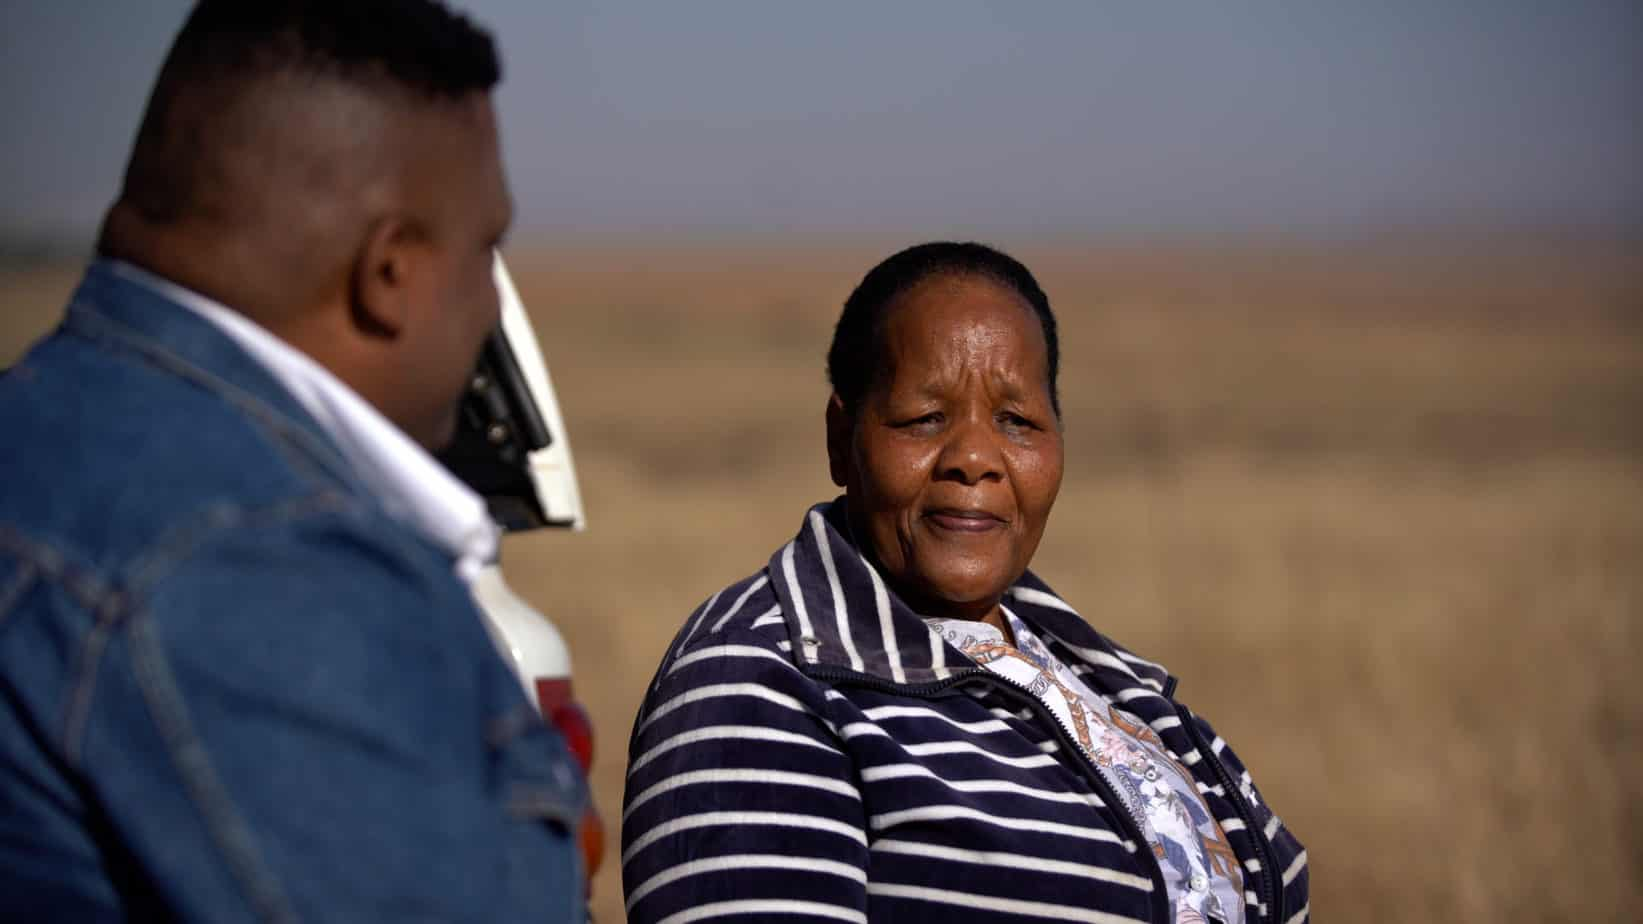 """""""I took a leap of faith when I left my job (as a librarian) because I didn't have land and I didn't have enough money, but I knew it was something I had to do. I was passionate about farming,"""" says Free State farmer Mahadi Mopeli. Photo: WYRD Films"""